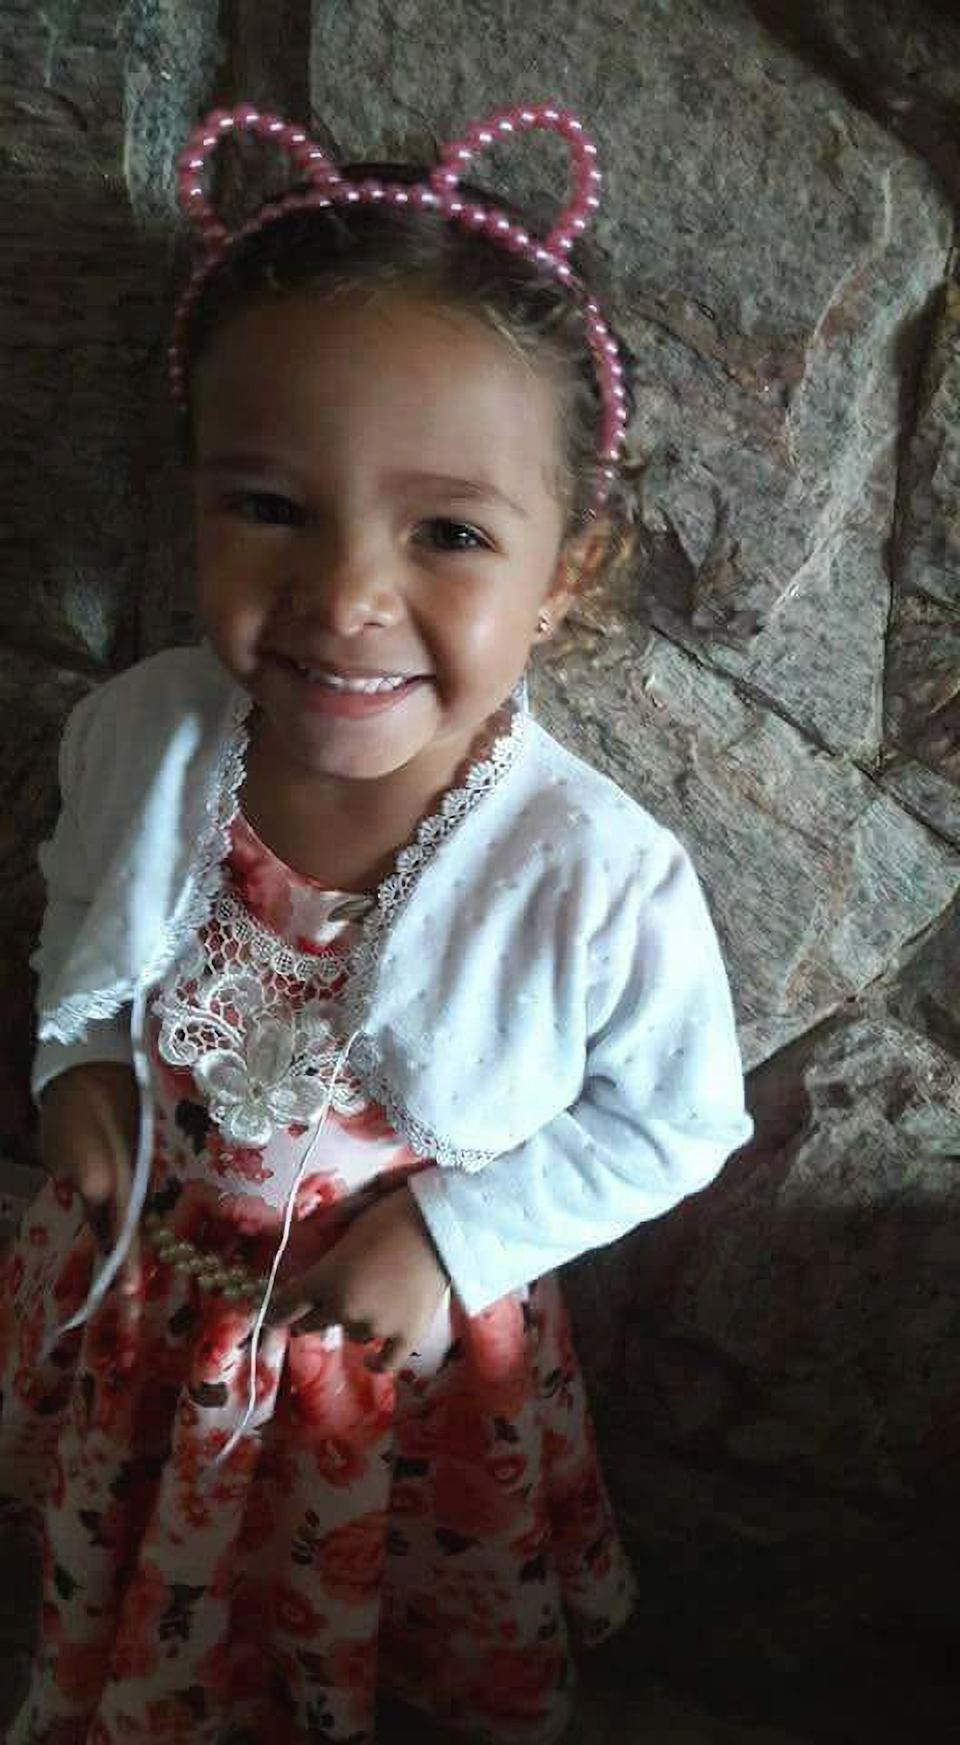 Picture shows the victim Ana Livia Lopes da Silva (3) who was subjected to a series of violent beatings by her stepfather for wetting the bed in Pocos de Caldas, Brazil, in June 2018. Newsflash/australscope